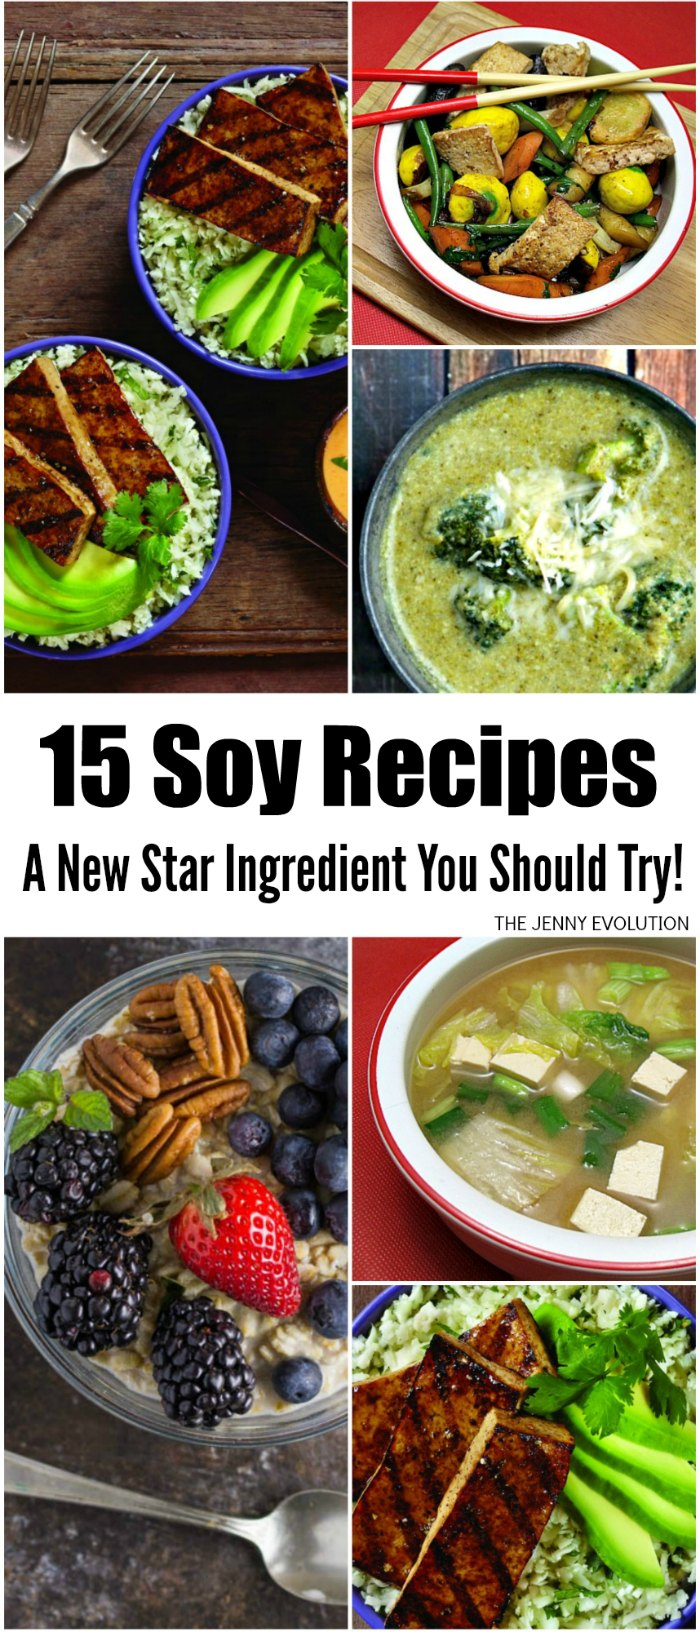 15 Soy Recipes - A New star Ingredient You Should Try!